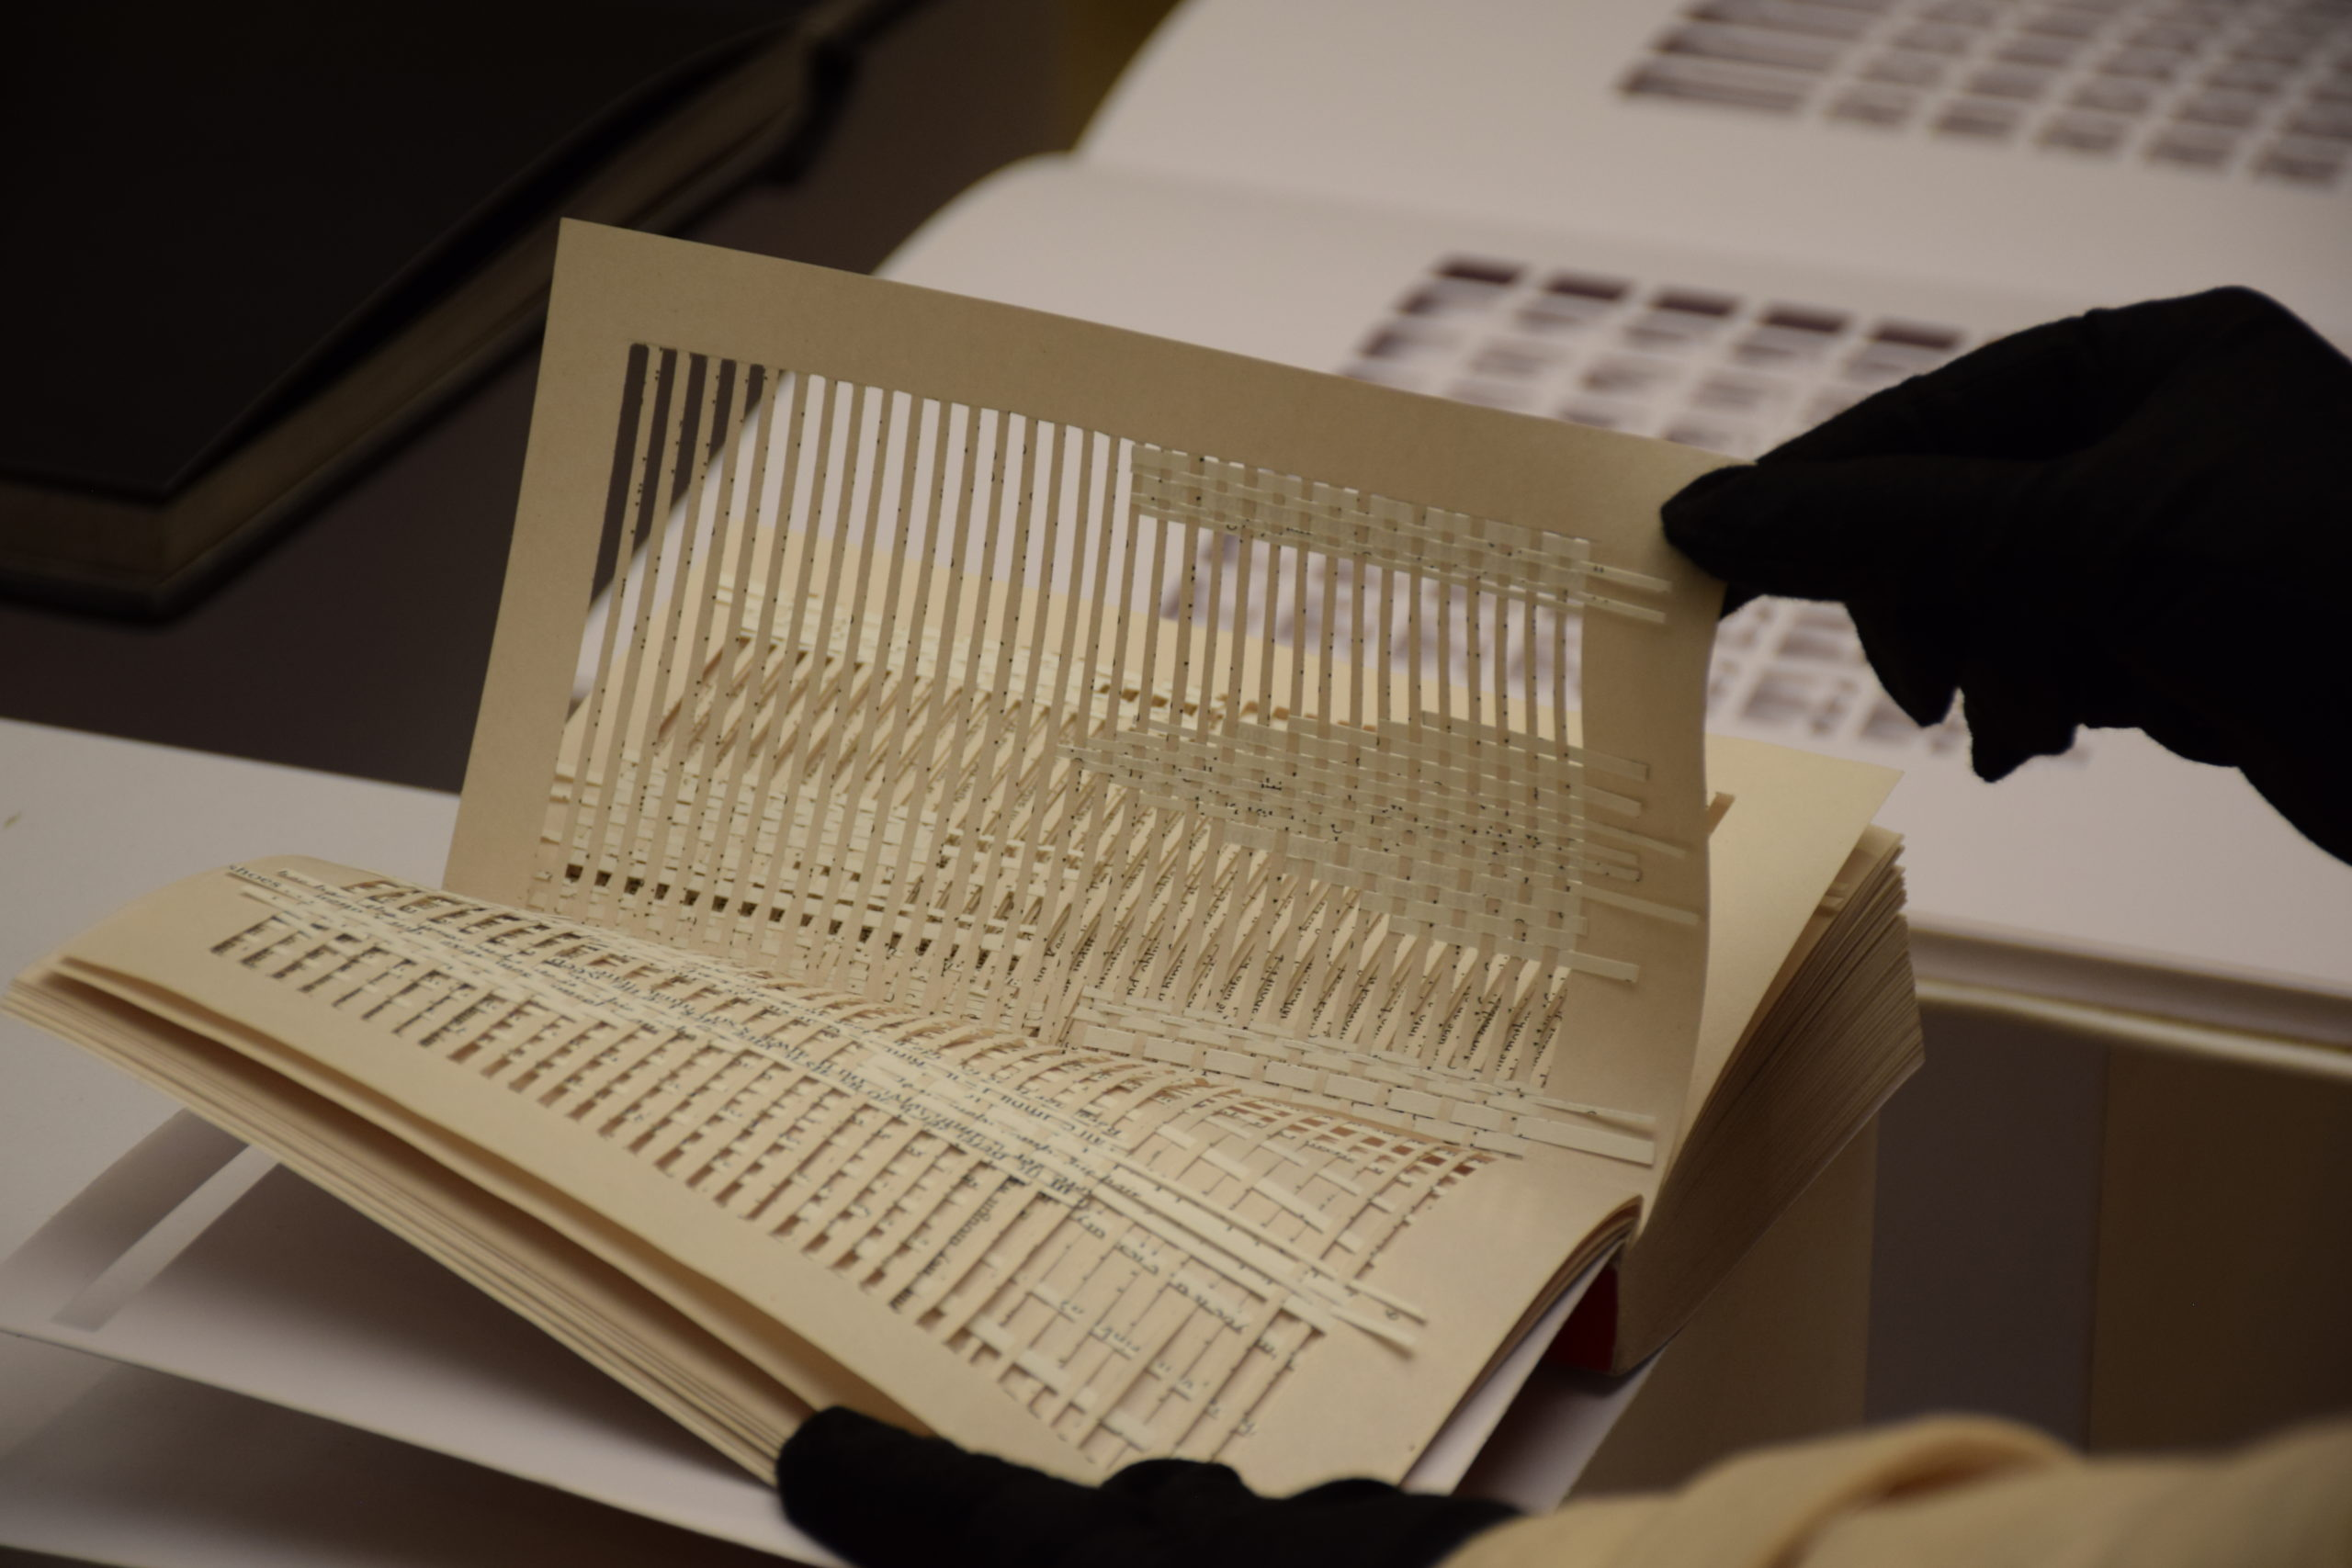 An open artists' book by Masoumeh Mohtadi being paged through by a black gloved hand showing pages with excised text and woven bits of paper throughout